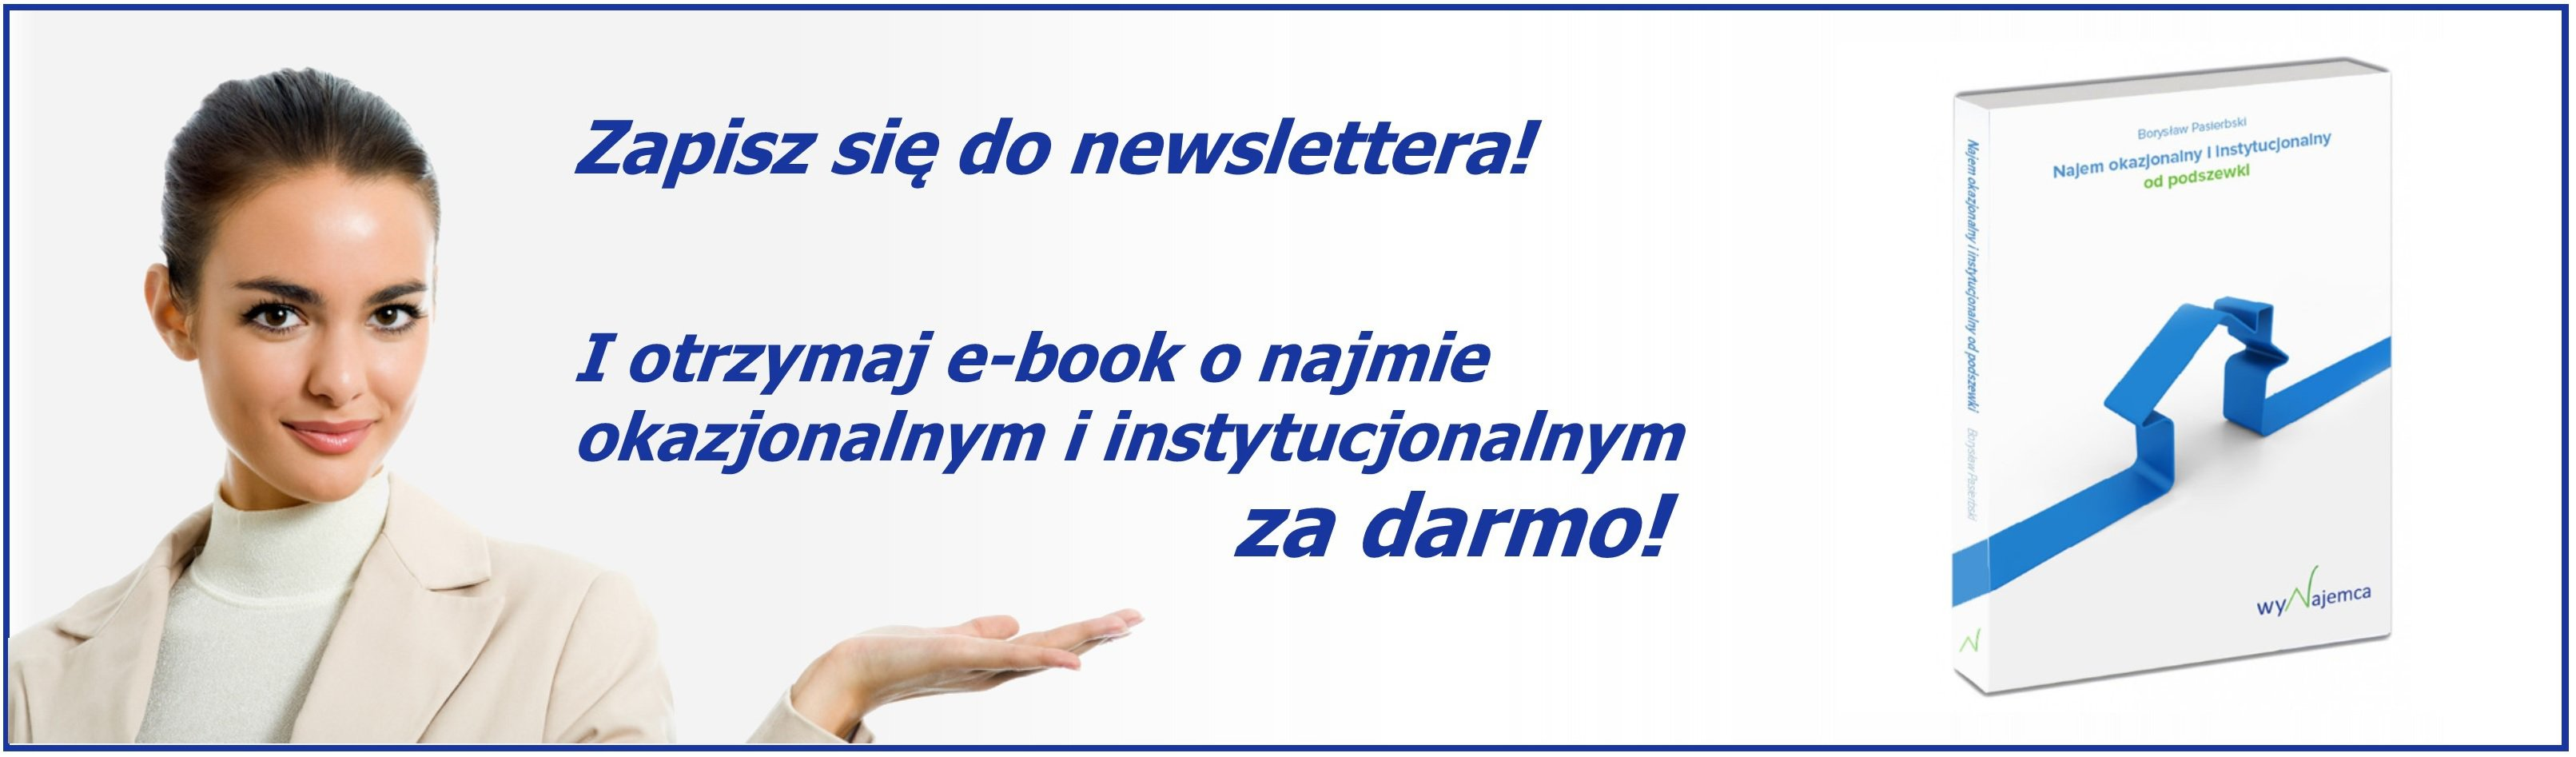 e-book newsletter